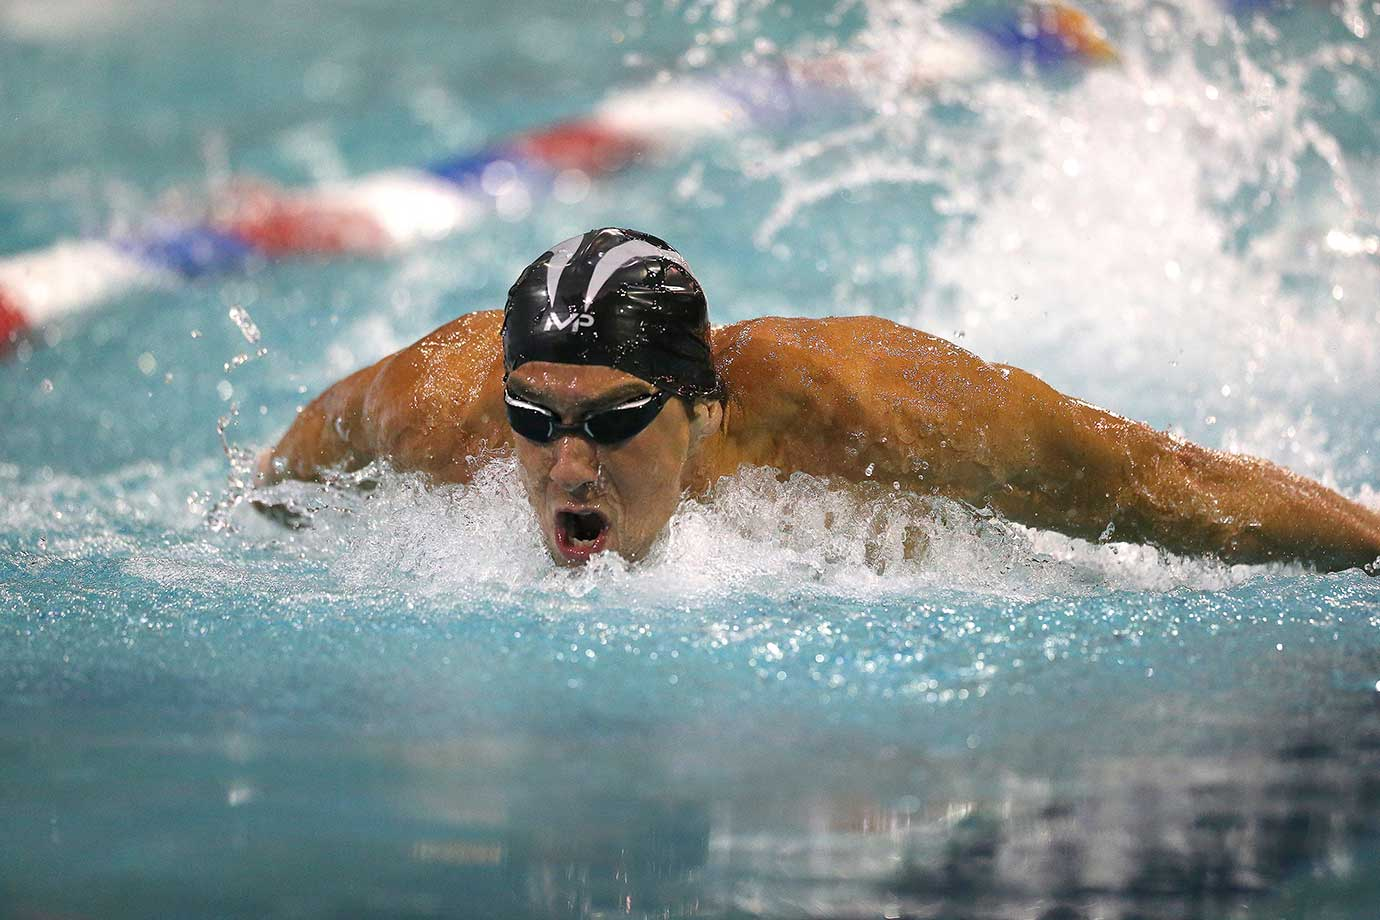 Michael Phelps in his final heat of the 100 LC Meter Butterfly at the Arena Pro Swim Series in Orlando.